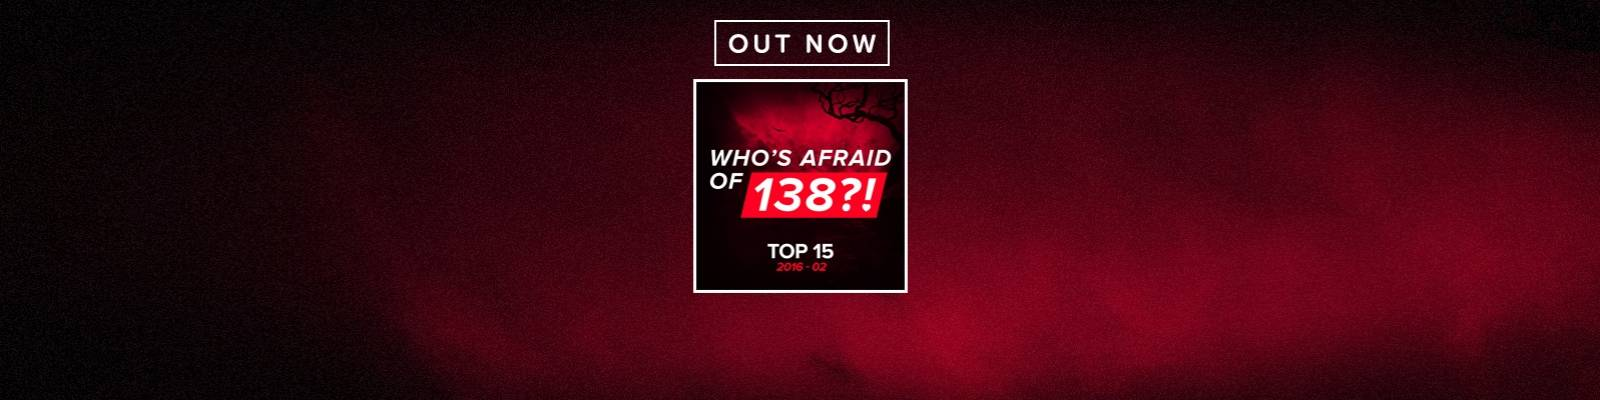 OUT NOW: Who's Afraid Of 138?! Top 15 – 2016-02